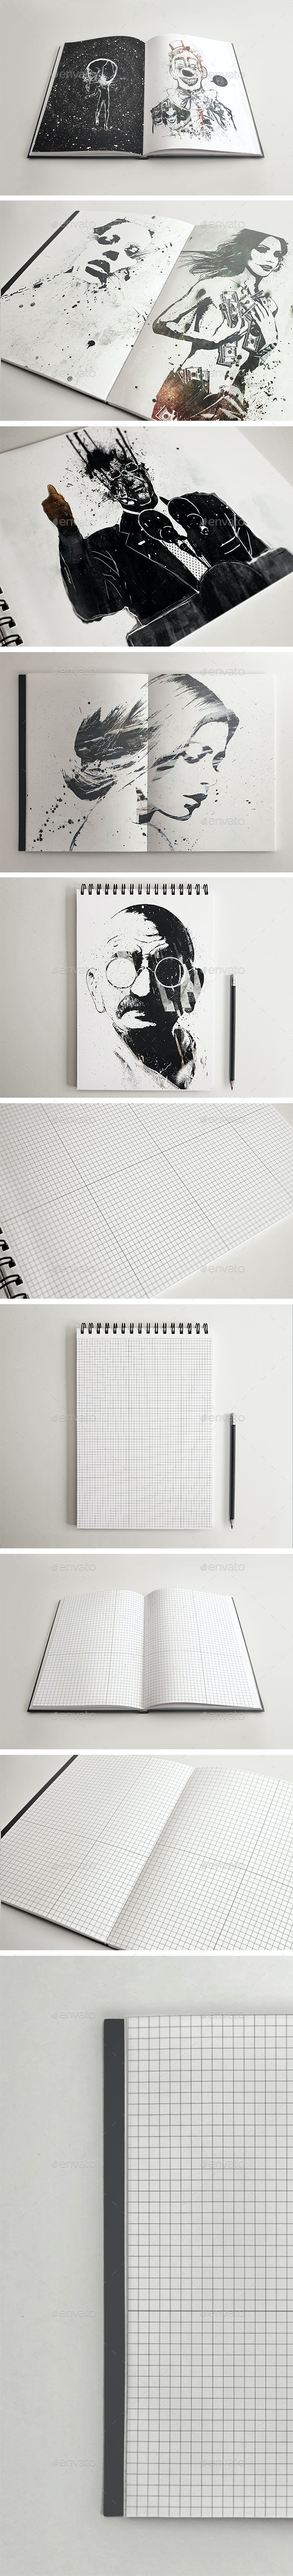 5 SketchBook Notebook Mockups - Books Print